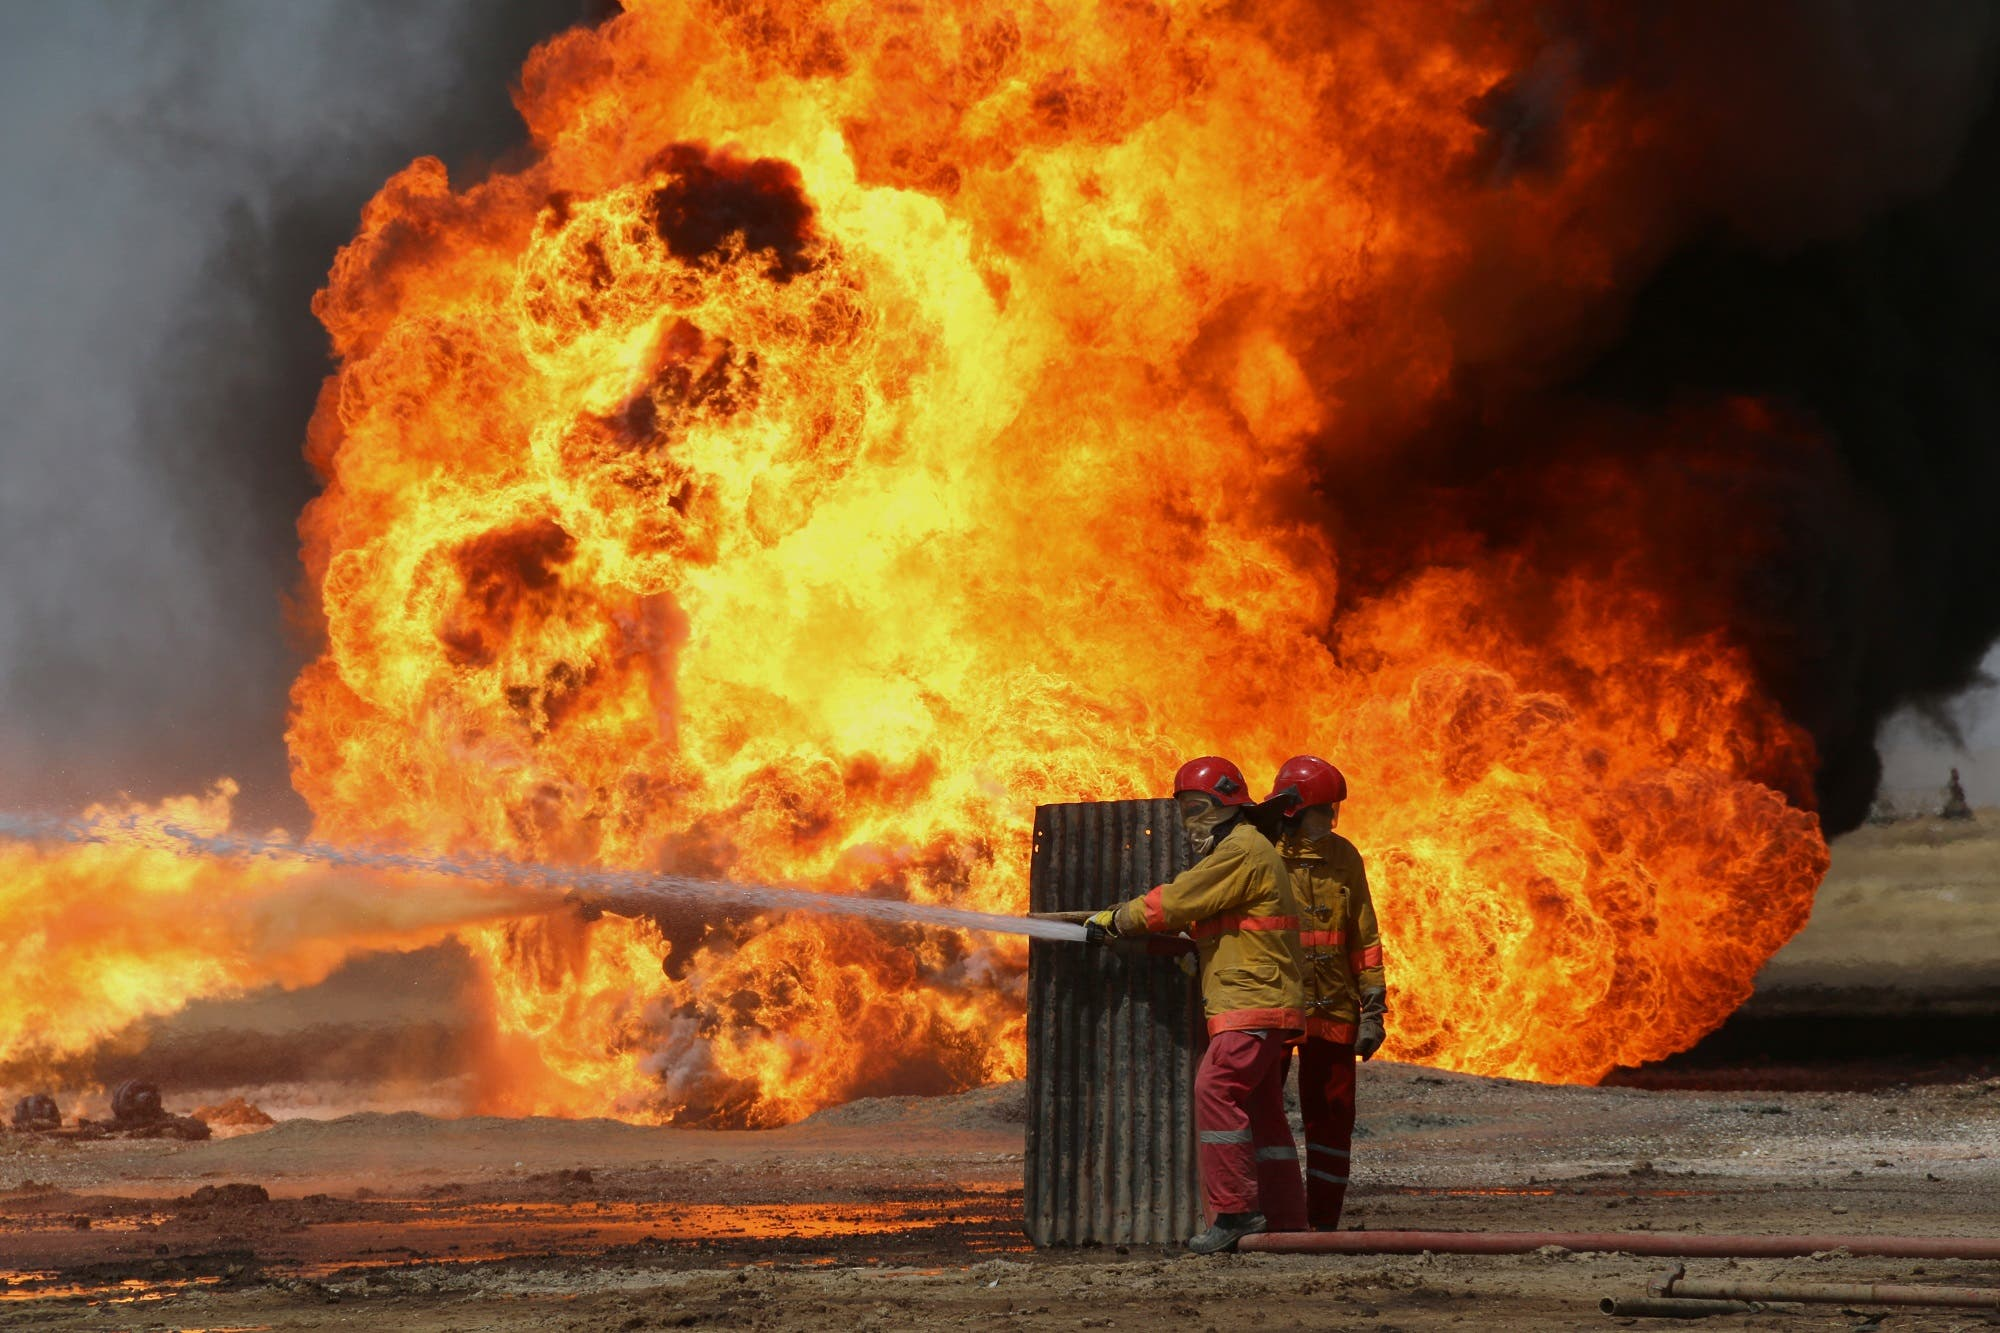 Oil workers and firemen try to extinguish flames at the Khabbaz oil field some 20 km away from Kirkuk on June 1, 2016 following an attack by ISIS. (AFP)